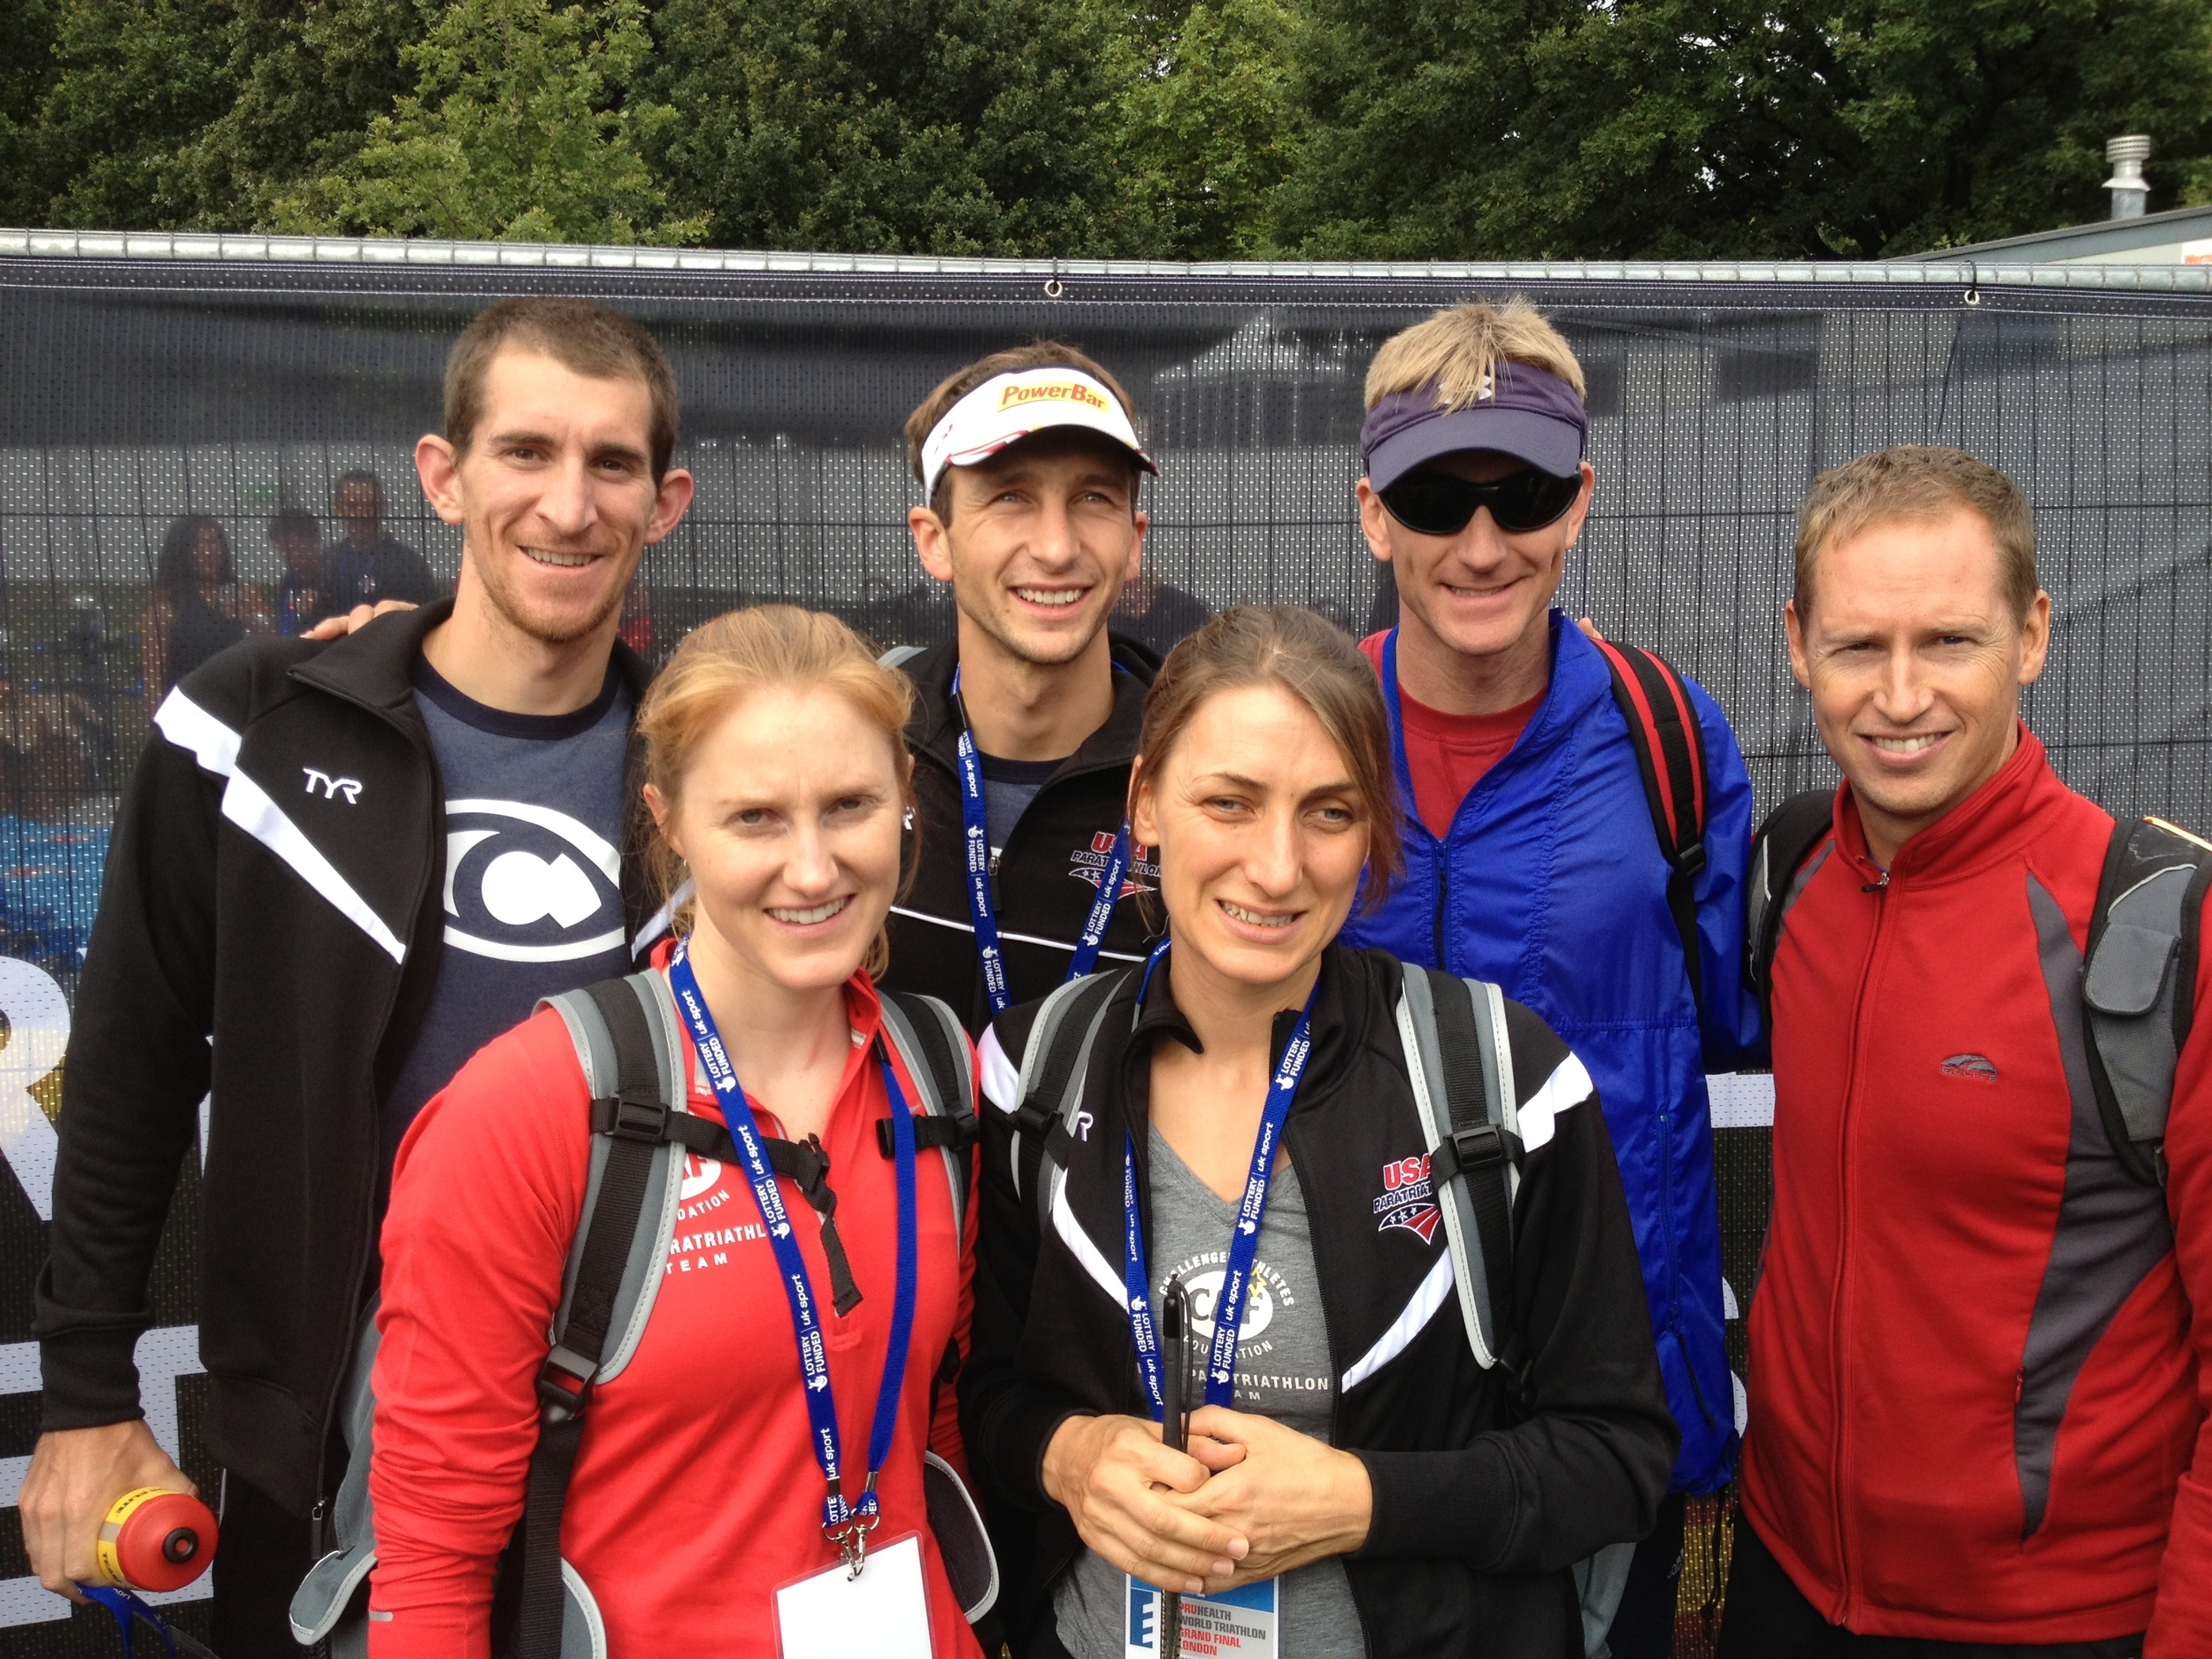 Hanging out with some of the other US Tri 6 athletes including Patricia Walsh, Jeremy Winters and their guides.